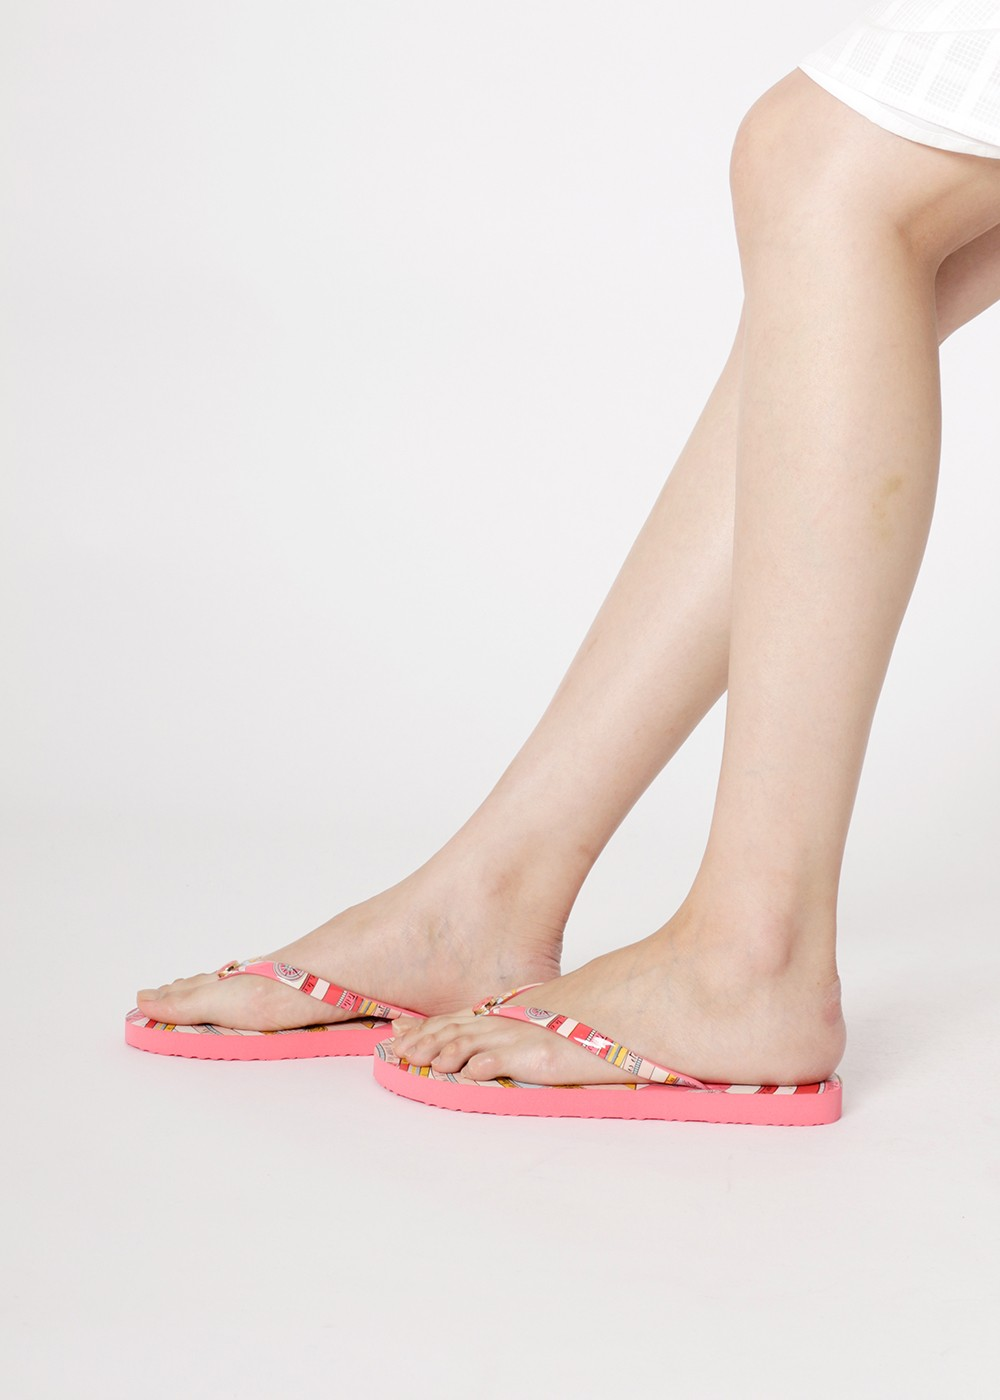 【最大48%OFF】【5/7入荷】PRINTED THIN FLIP FLOP|PINK CONSTELLATION|ビーチサンダル|Tory Burch